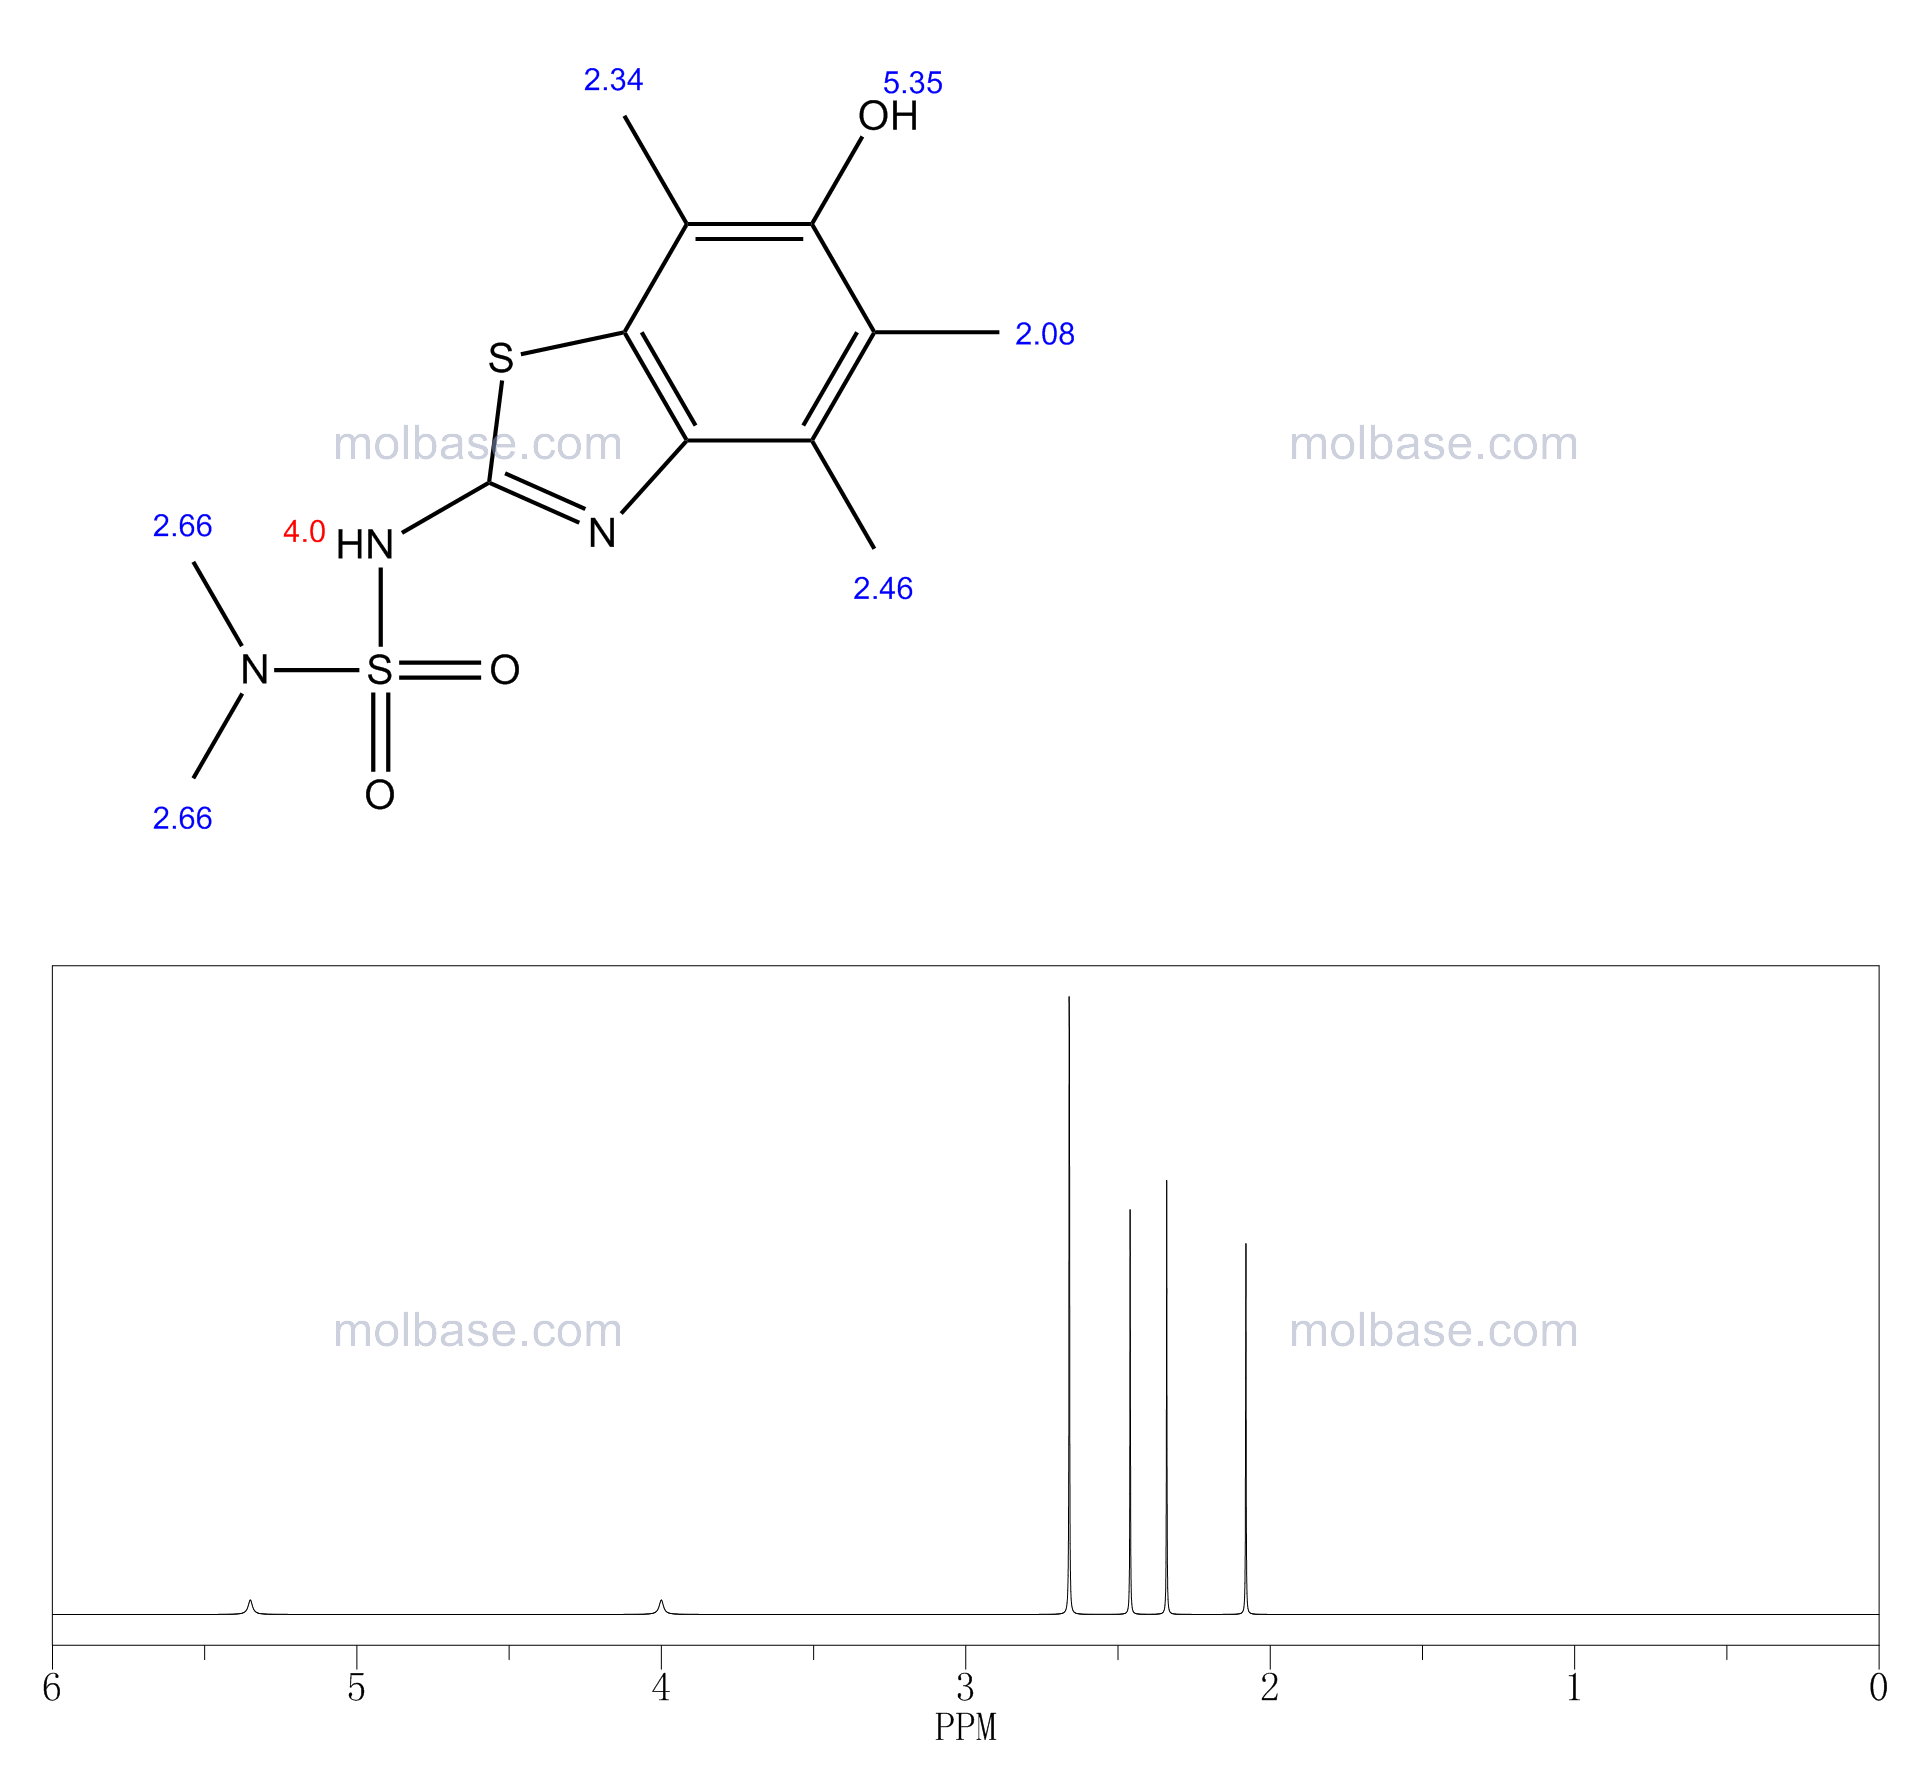 N'-(6-Hydroxy-4,5,7-trimethyl-1,3-benzothiazol-2-yl)-N,N-dimethyl sulfuric diamide NMR spectra analysis, Chemical CAS NO. 120164-84-3 NMR spectral analysis, N'-(6-Hydroxy-4,5,7-trimethyl-1,3-benzothiazol-2-yl)-N,N-dimethyl sulfuric diamide C-NMR spectrum